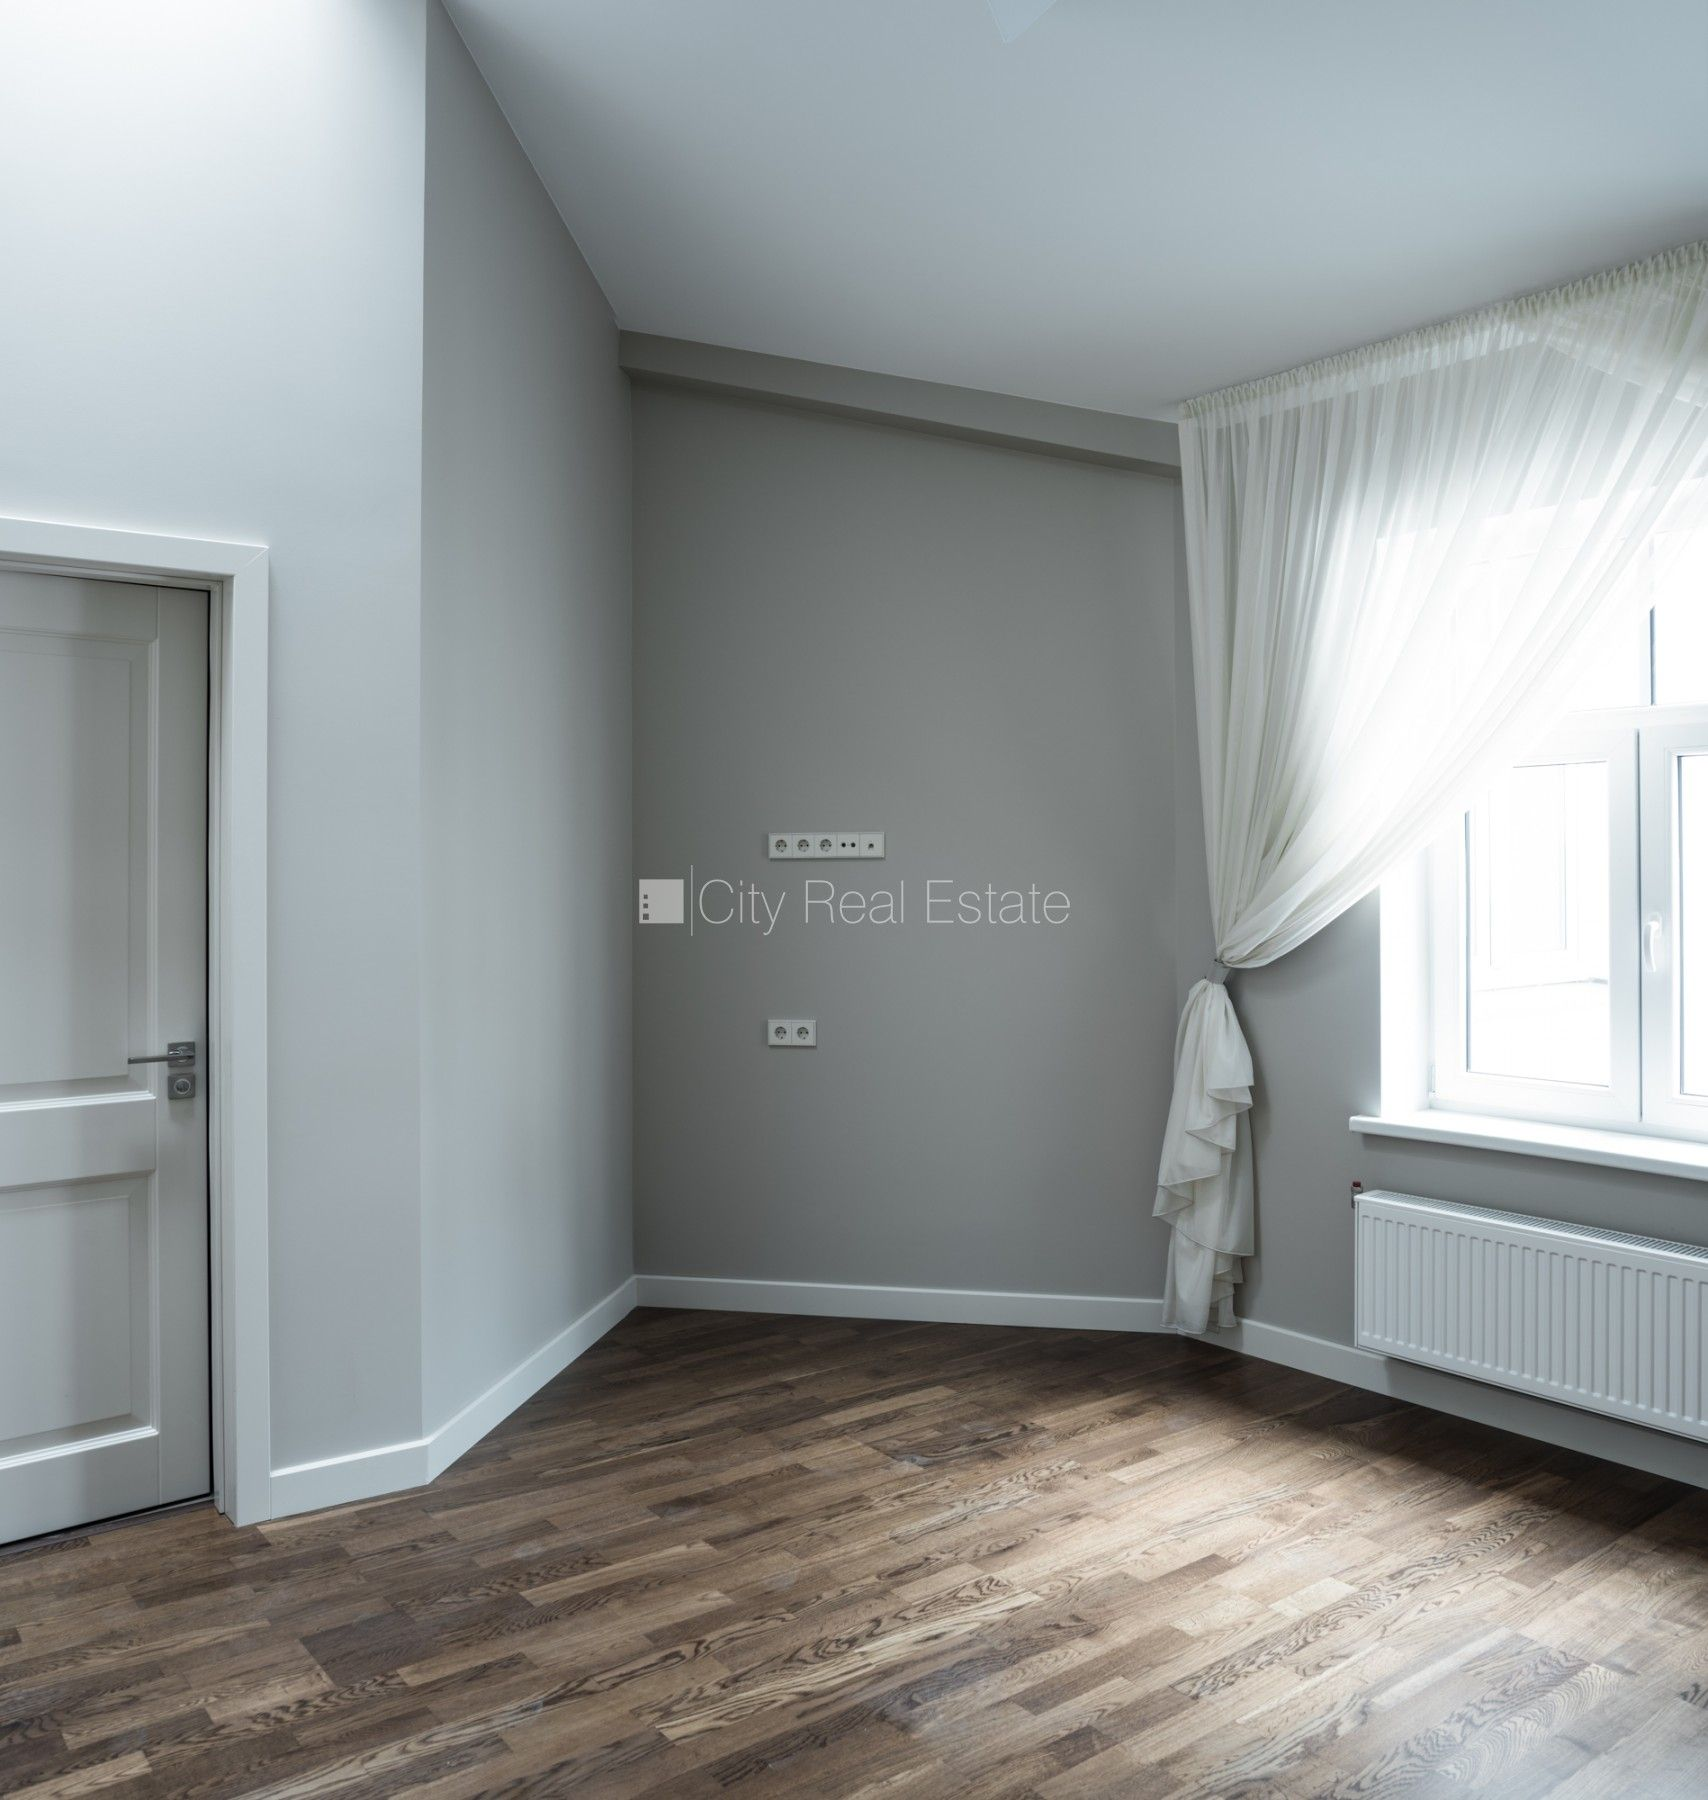 Apartments For Rent Under 1000 Near Me: Apartment For Rent In Riga, Riga Center, Akas Street, 73